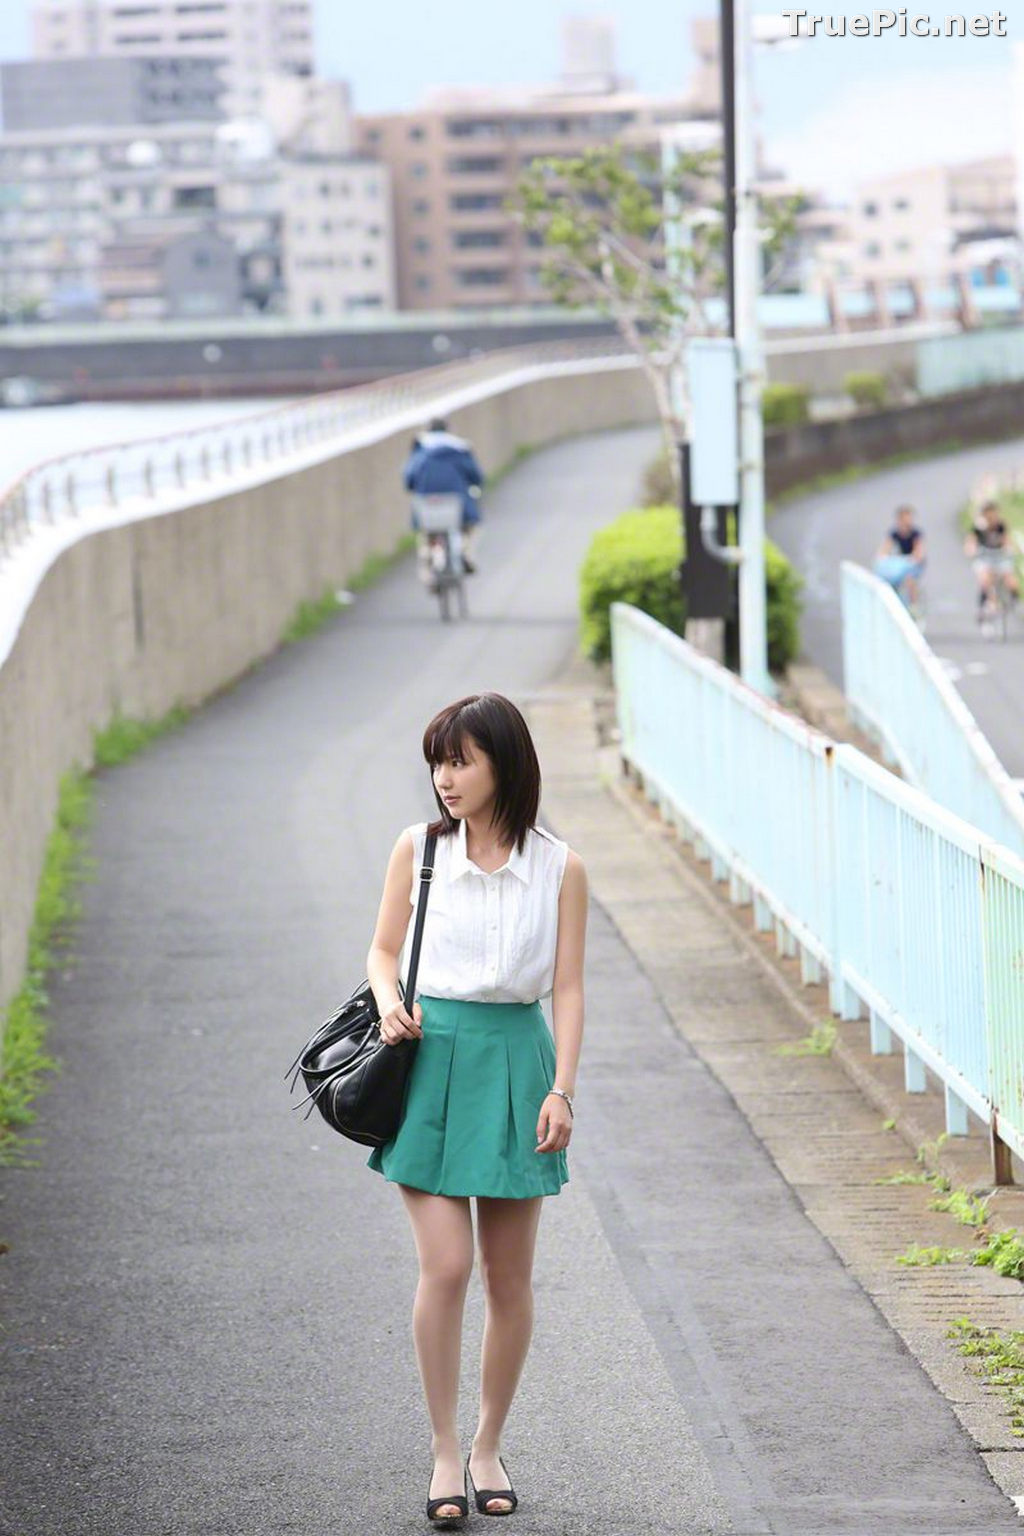 Image [WBGC Photograph] No.131 - Japanese Singer and Actress - Erina Mano - TruePic.net - Picture-4